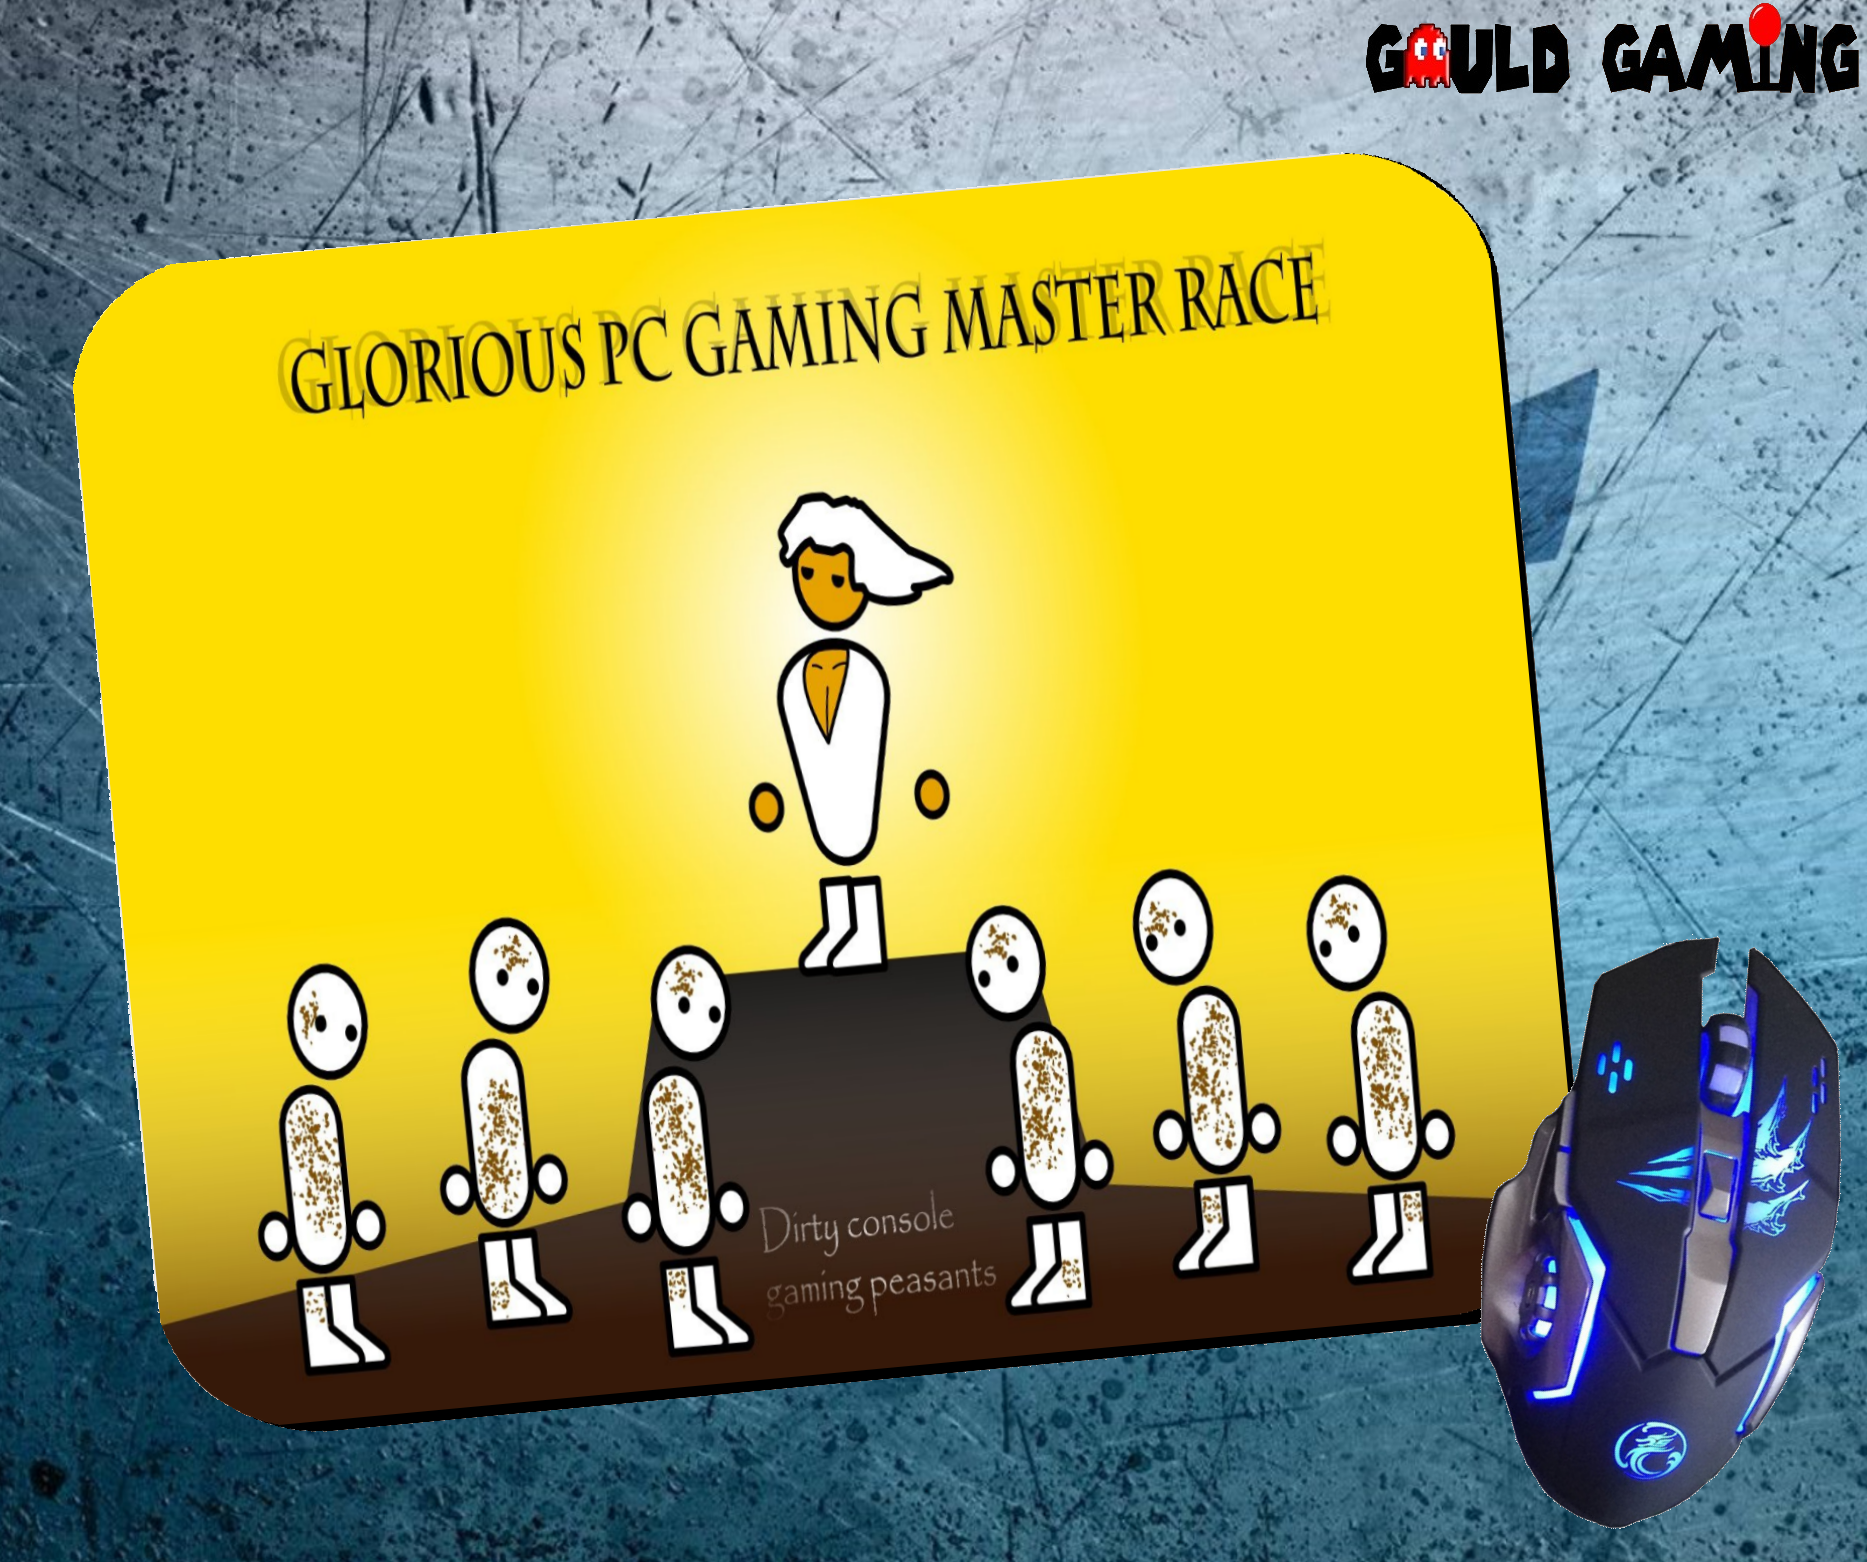 Pc Master Race Mouse Pad For Sale On Our Website Gouldgaming Com Be Sure To Like Us On Facebook Https Www Facebook Com Gamer Gifts Geeky Games Retro Gaming